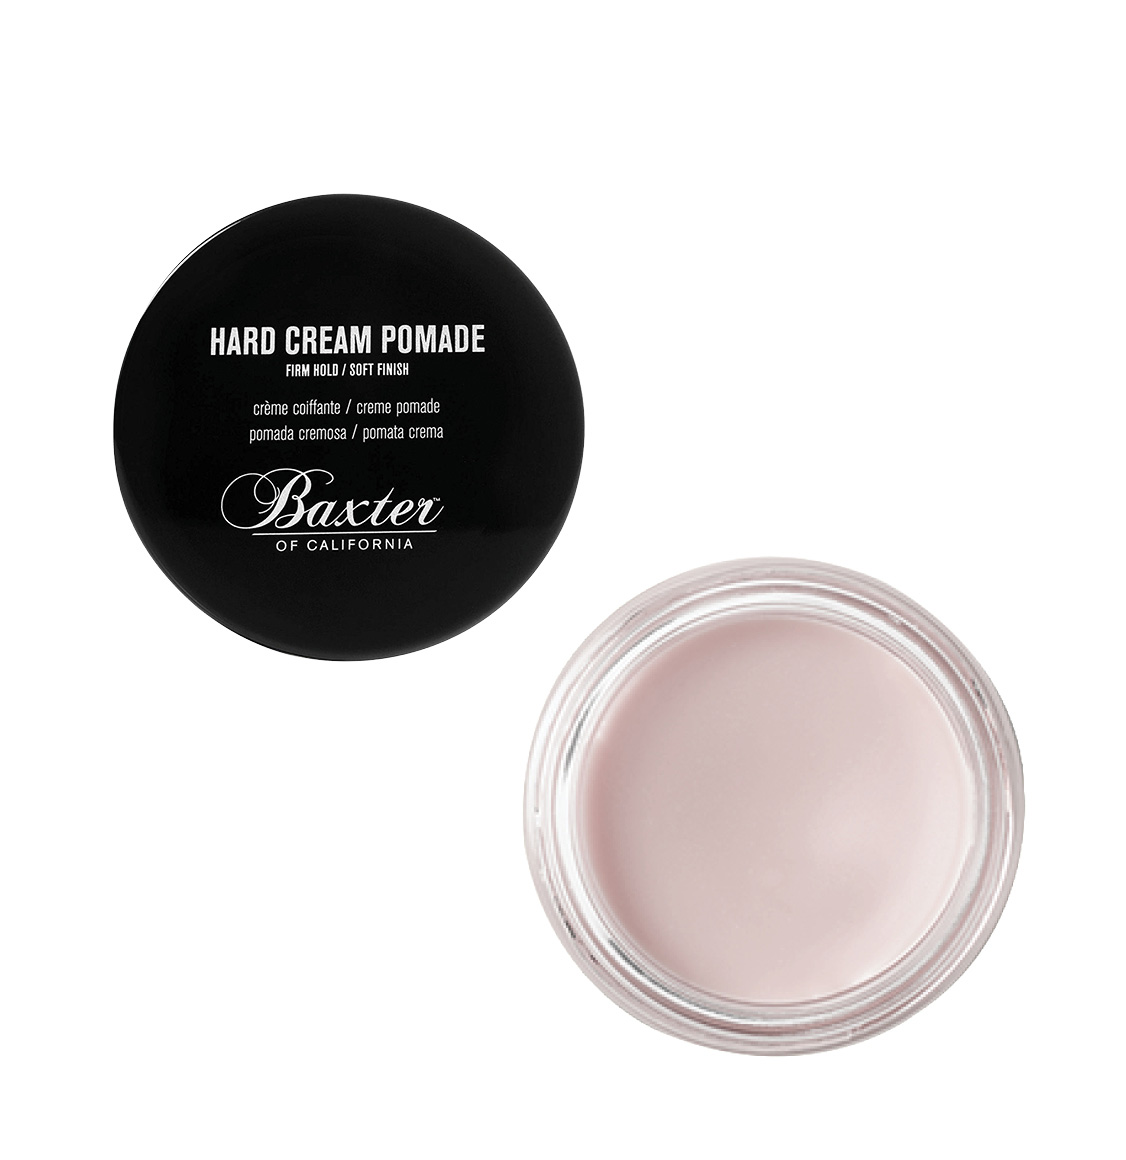 Baxter of California Hair Styling Hard Cream Pomade 60ml | Πομάδα Για Μαλλιά